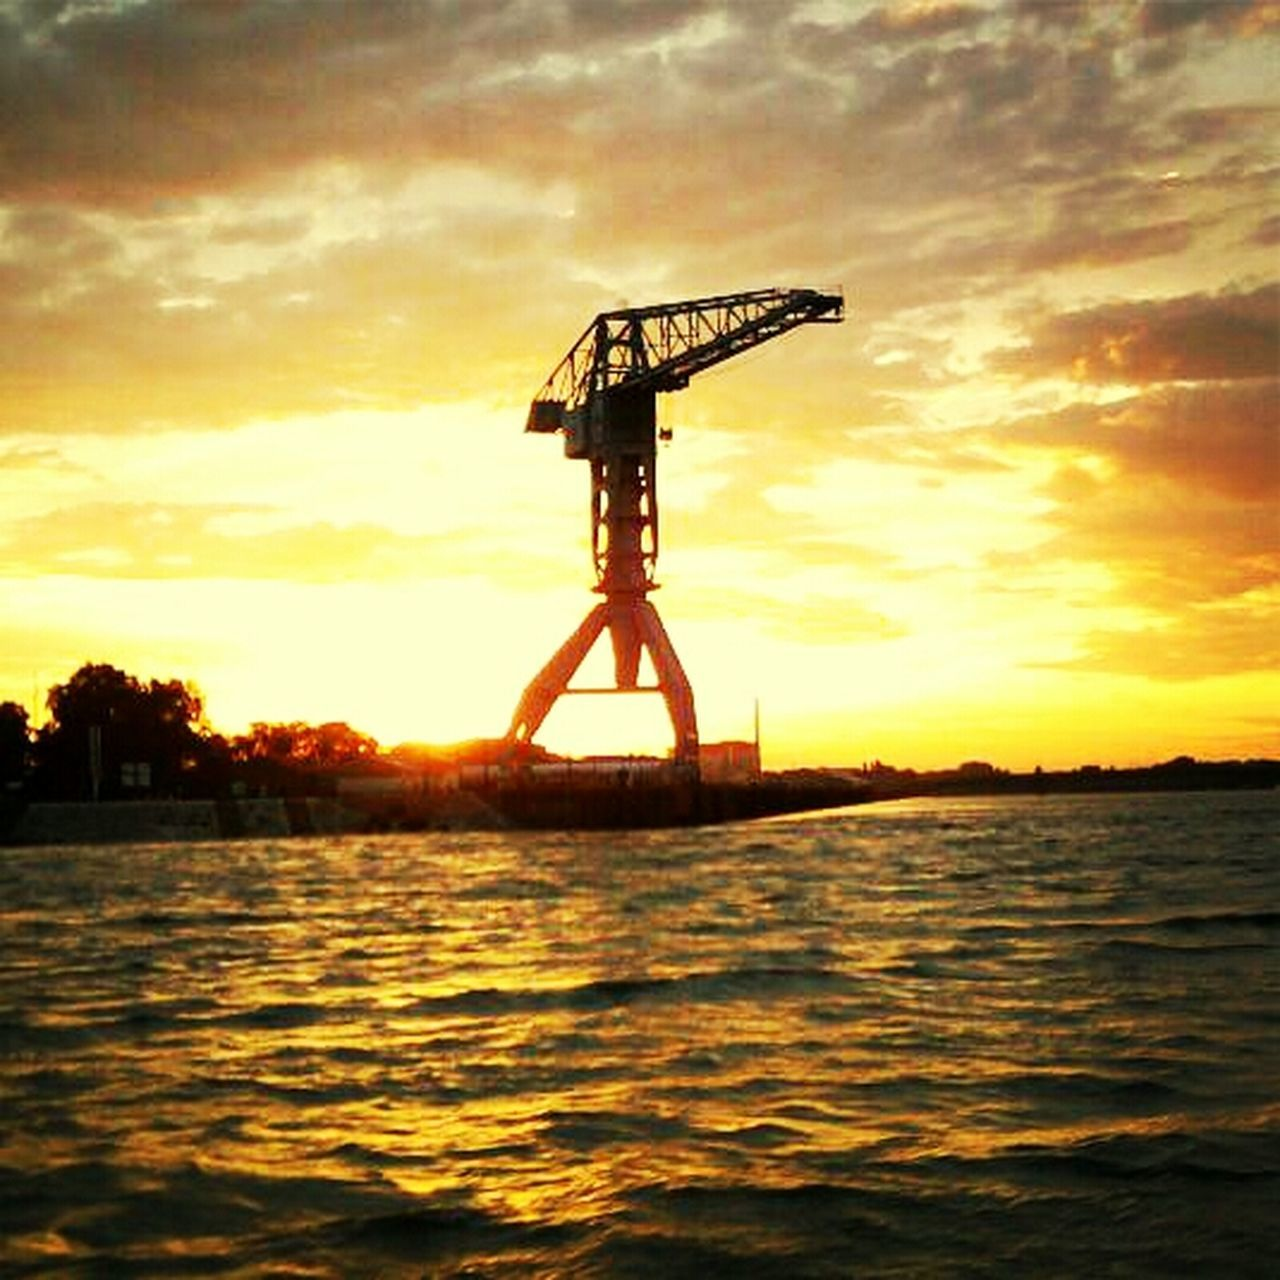 sunset, sky, silhouette, waterfront, water, nature, orange color, scenics, cloud - sky, sea, outdoors, tranquility, beauty in nature, tranquil scene, no people, offshore platform, horizon over water, drilling rig, day